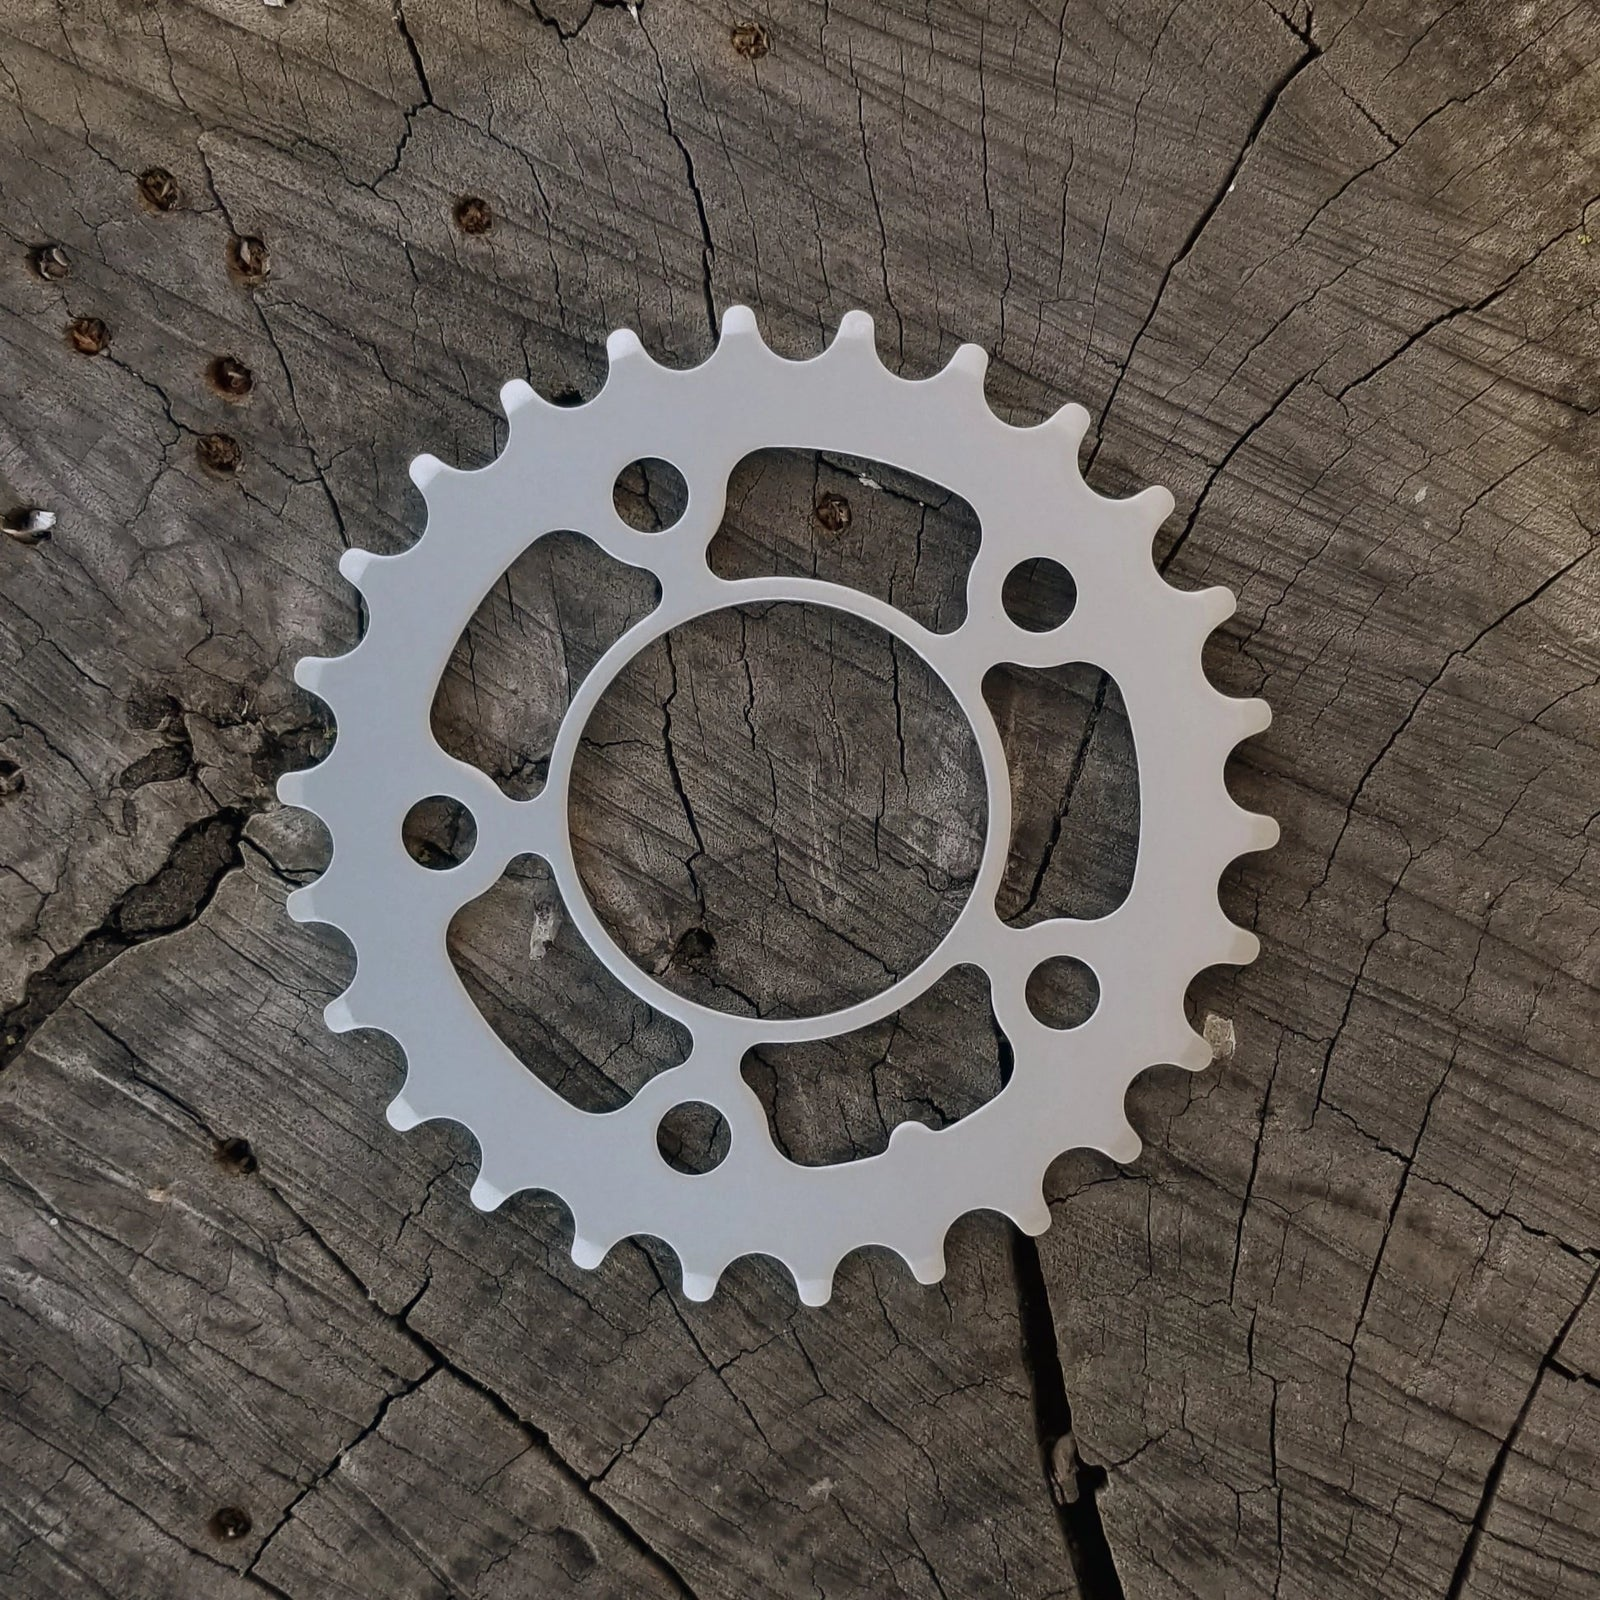 Chainring - Granny, 74mm bcd, Crmo steel